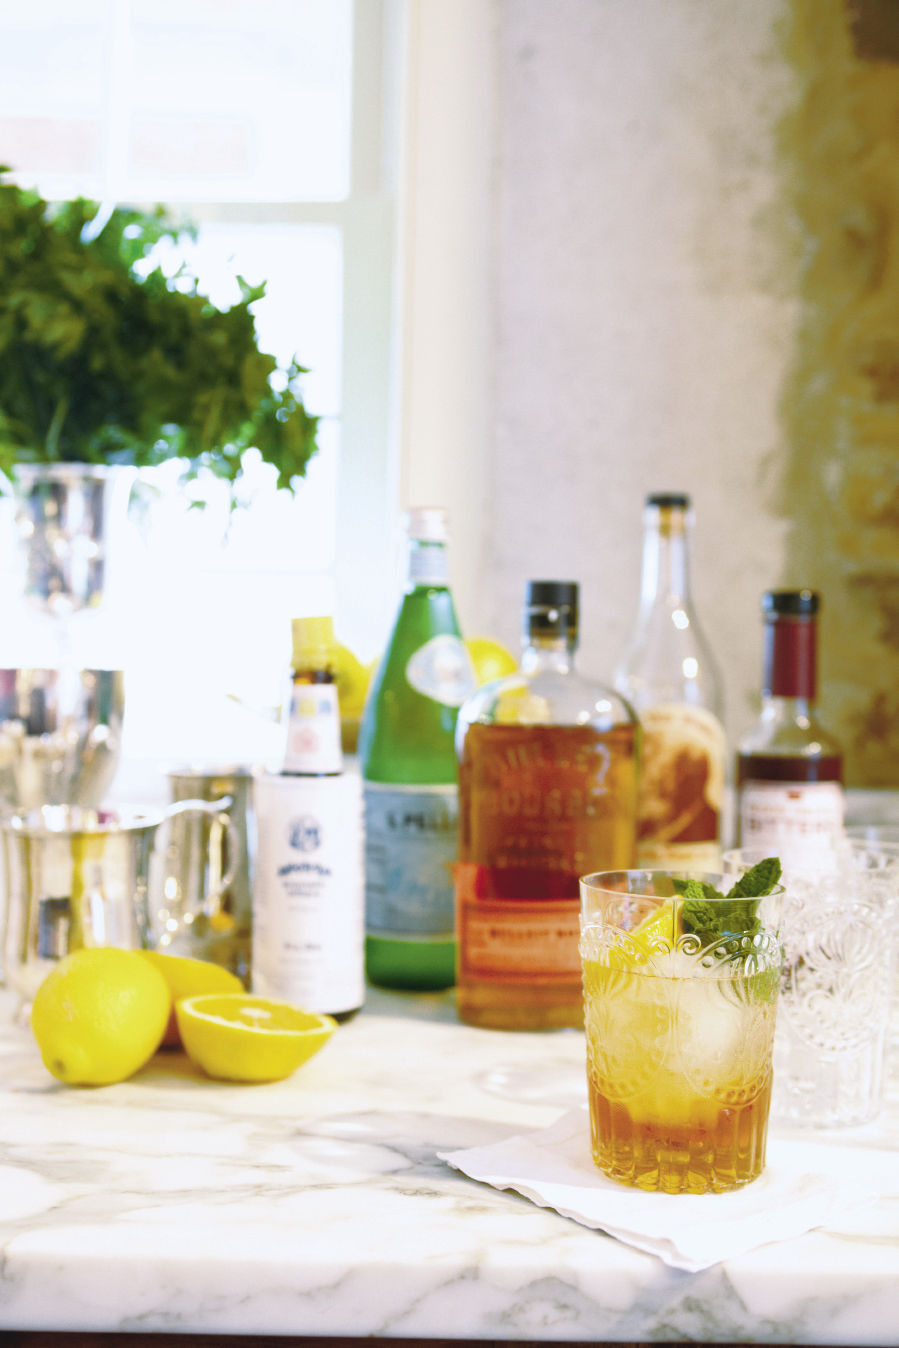 They suggest preparing a signature cocktail or punch for a party, handing guests a drink when they arrive.